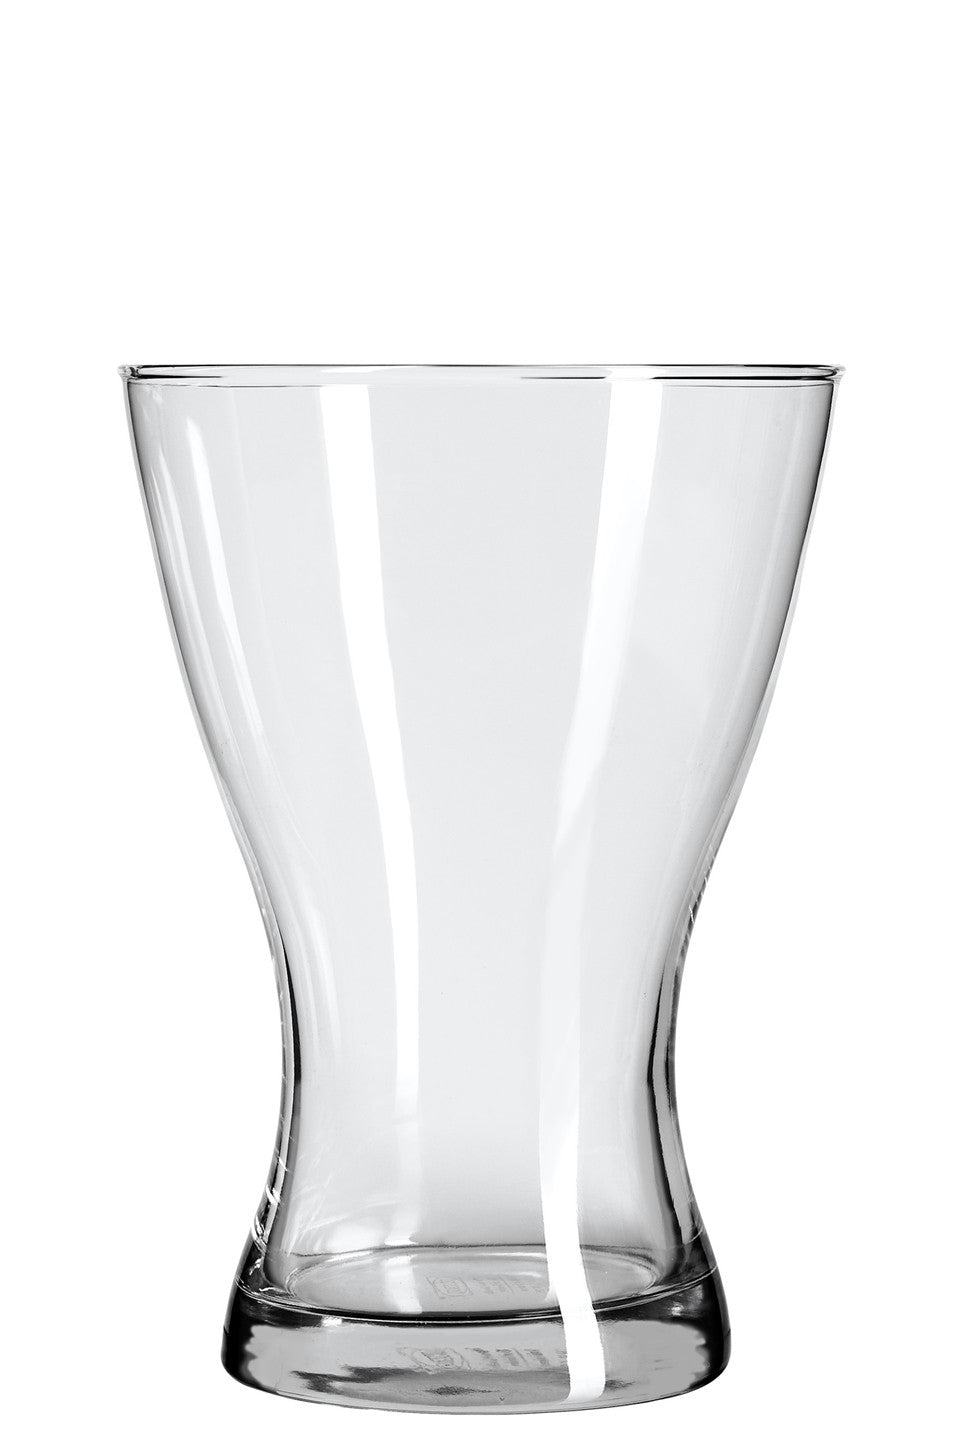 Wide-mouth glass vase